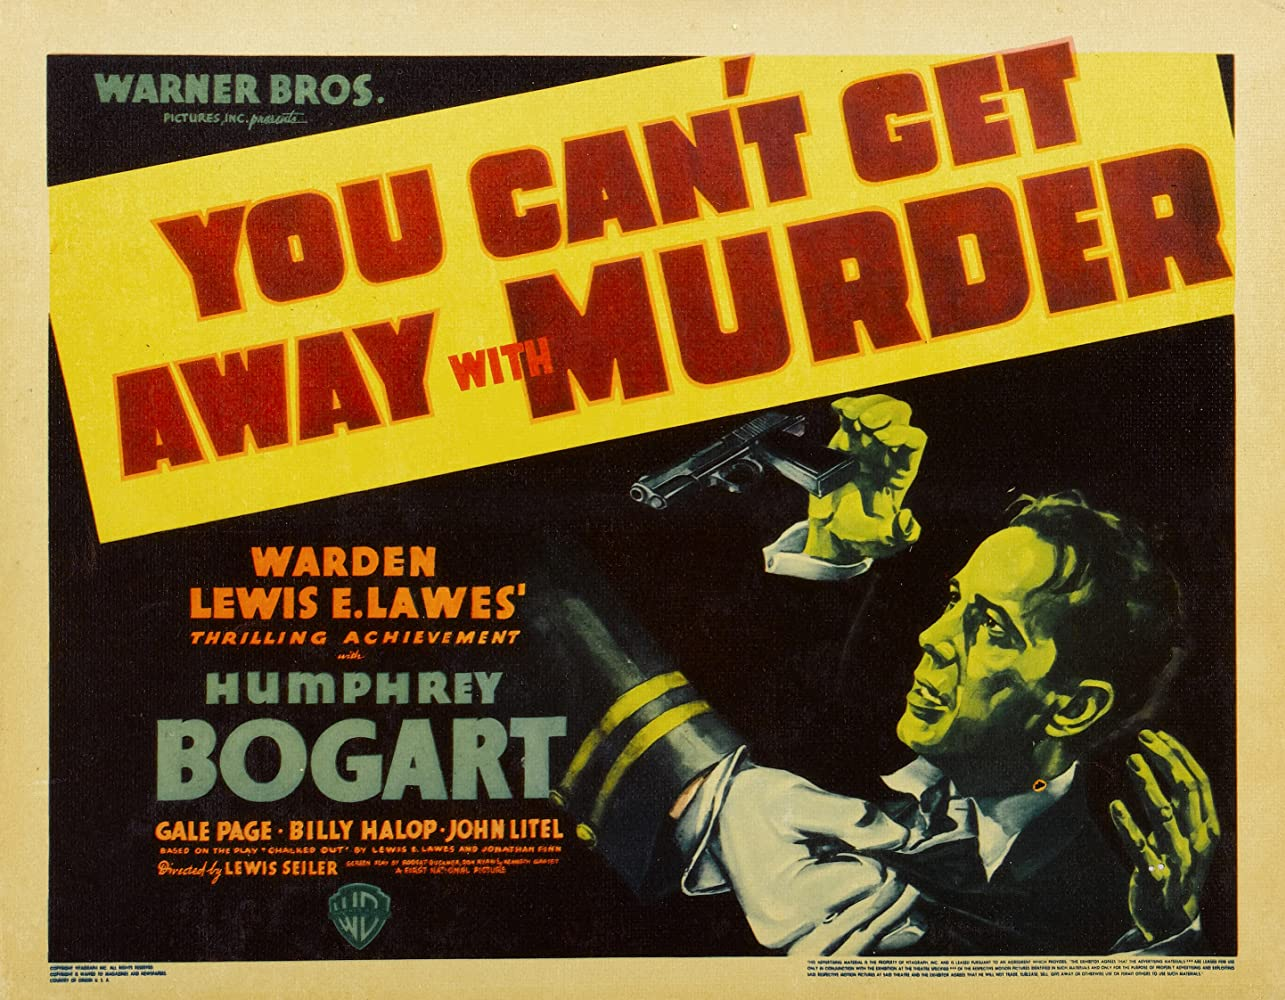 You Can't Get Away with Murder (1939)